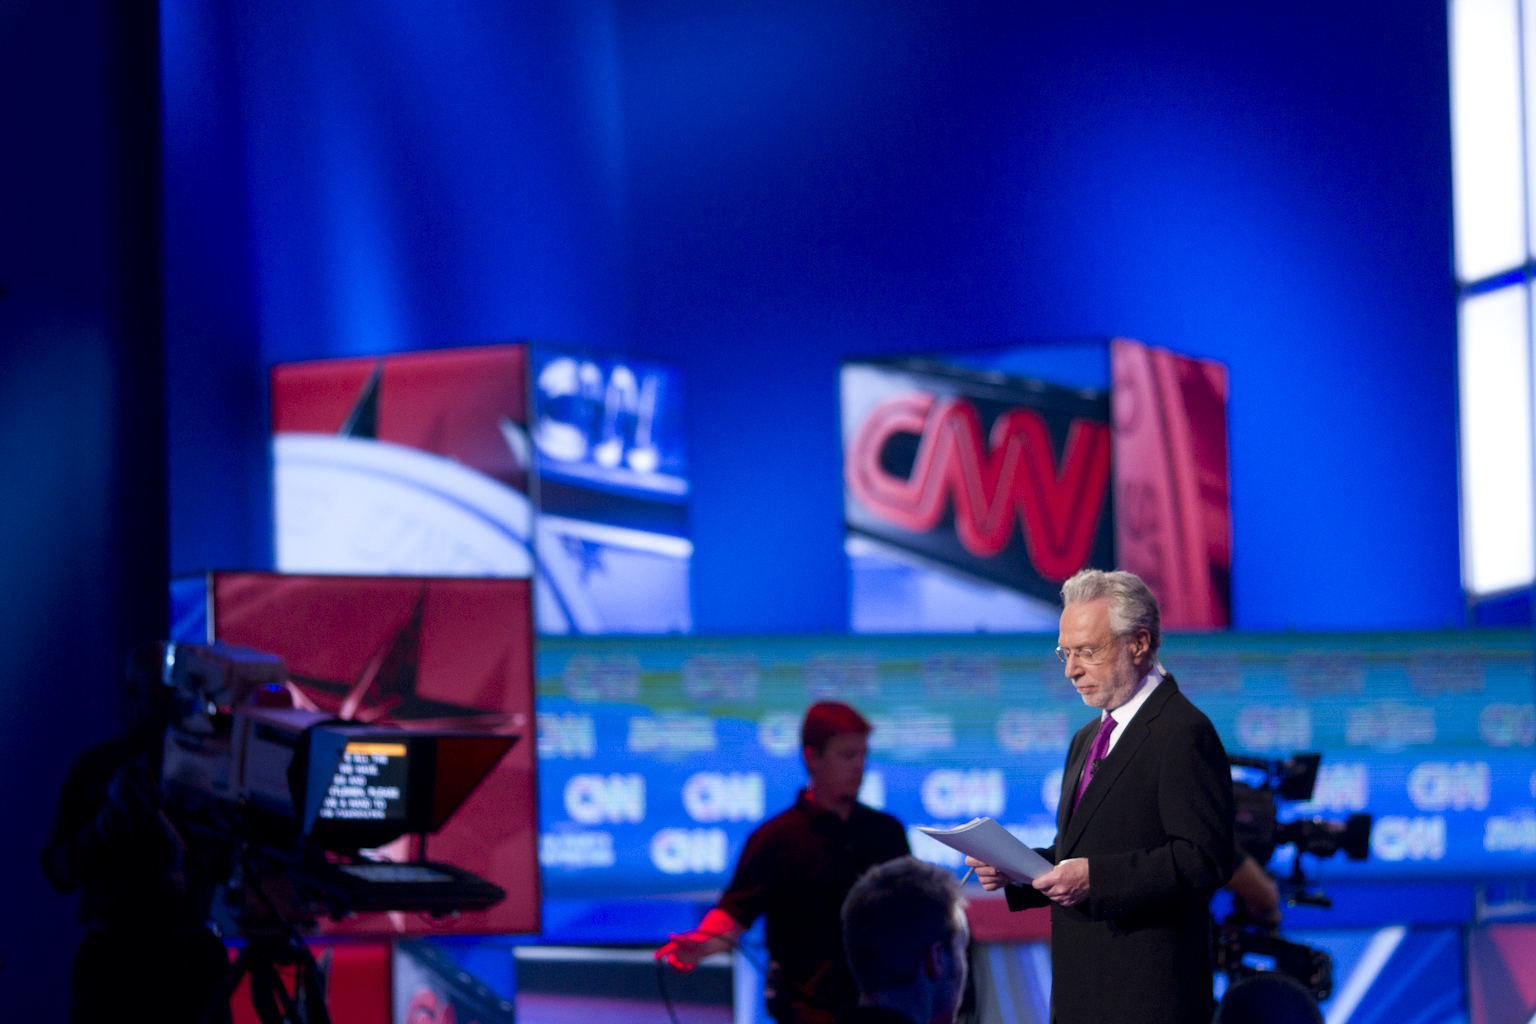 BLITZER'S BLOG: More goes into moderating a debate than meets the eye